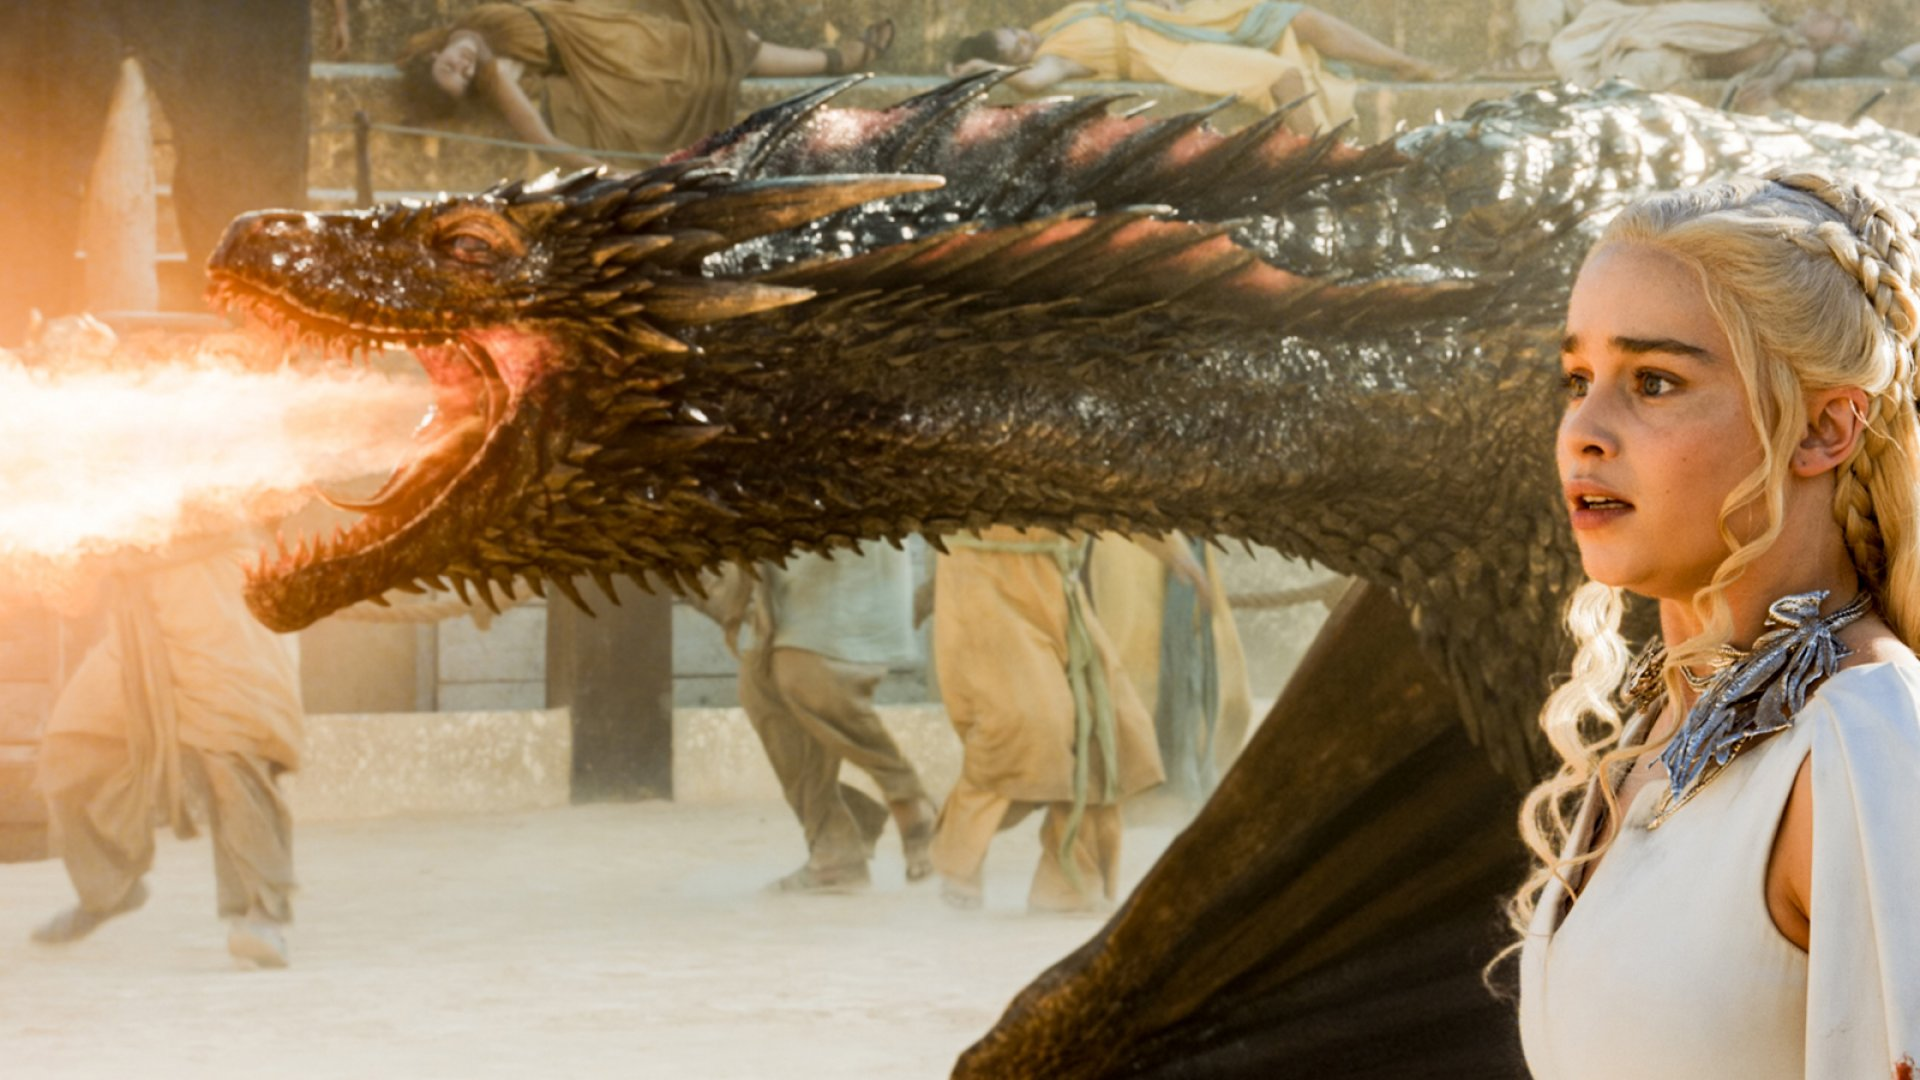 5 Great 'Game of Thrones' Scenes That Offer the Best Leadership Lessons